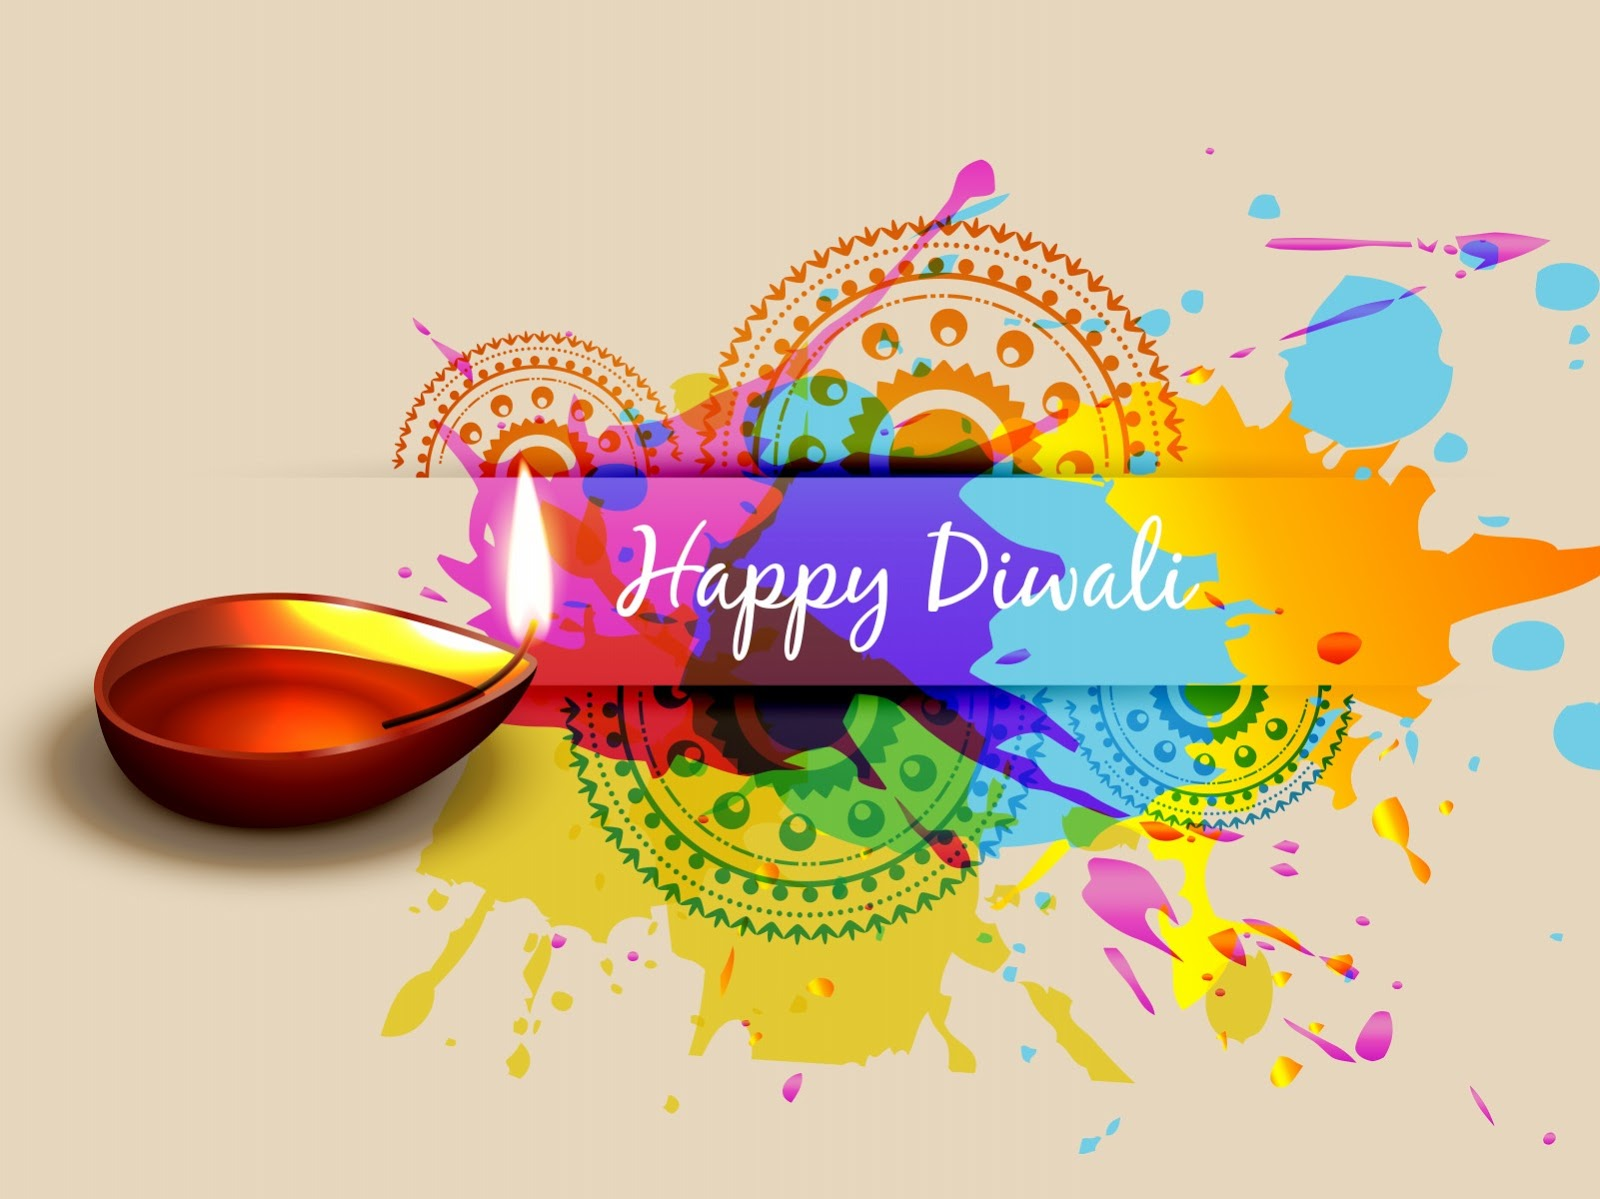 Sms Diwali Greetings Image Collections Greetings Card Design Simple